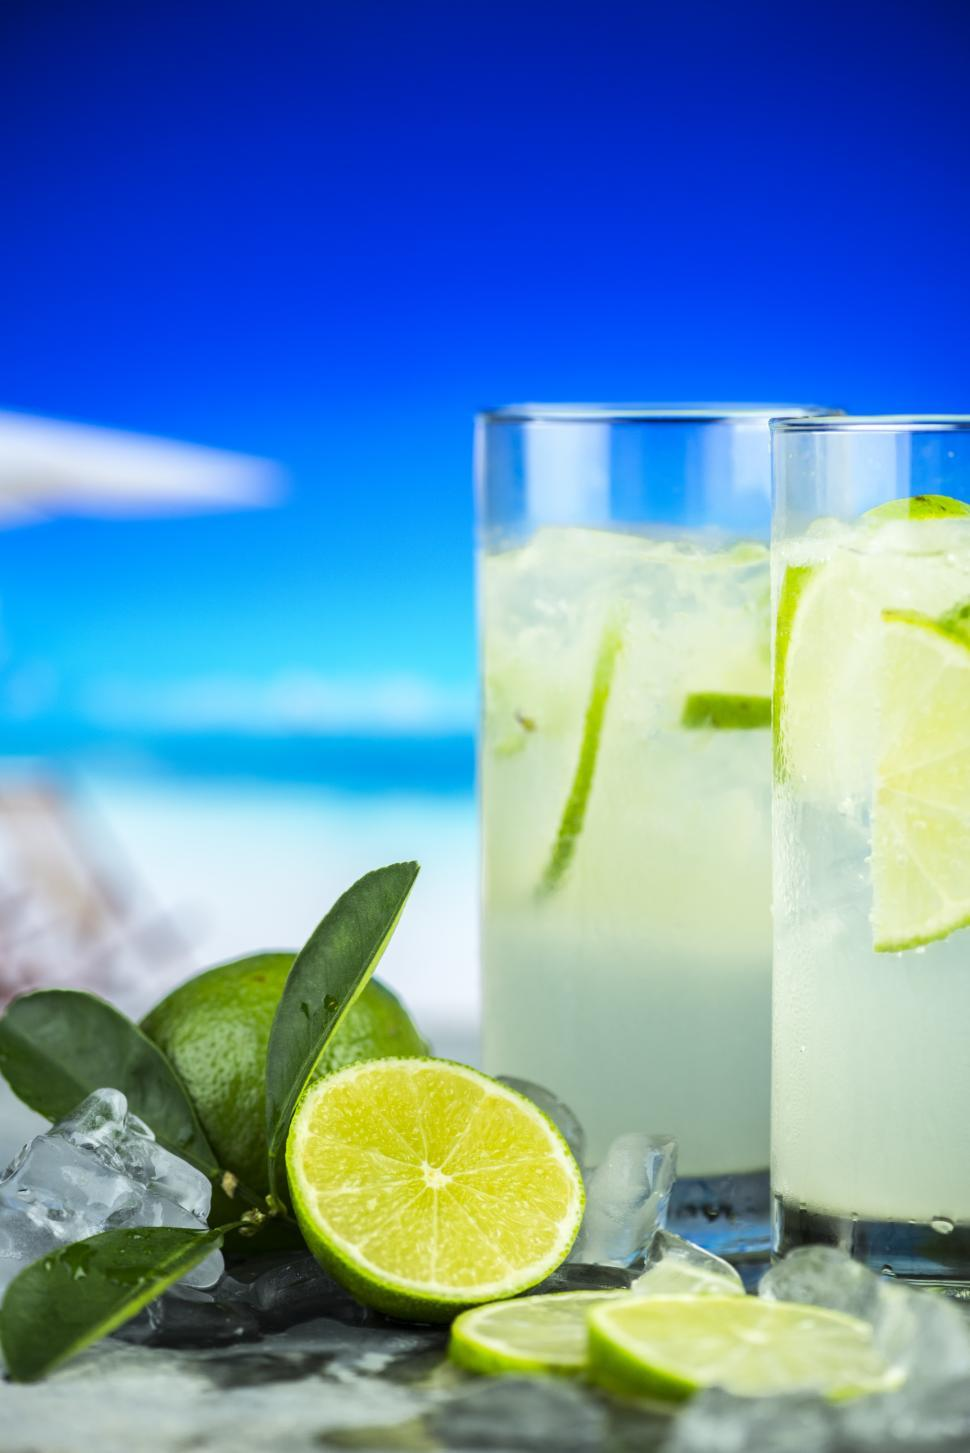 Download Free Stock HD Photo of Close up of two glasses full of chilled mojito, beach scene  Online